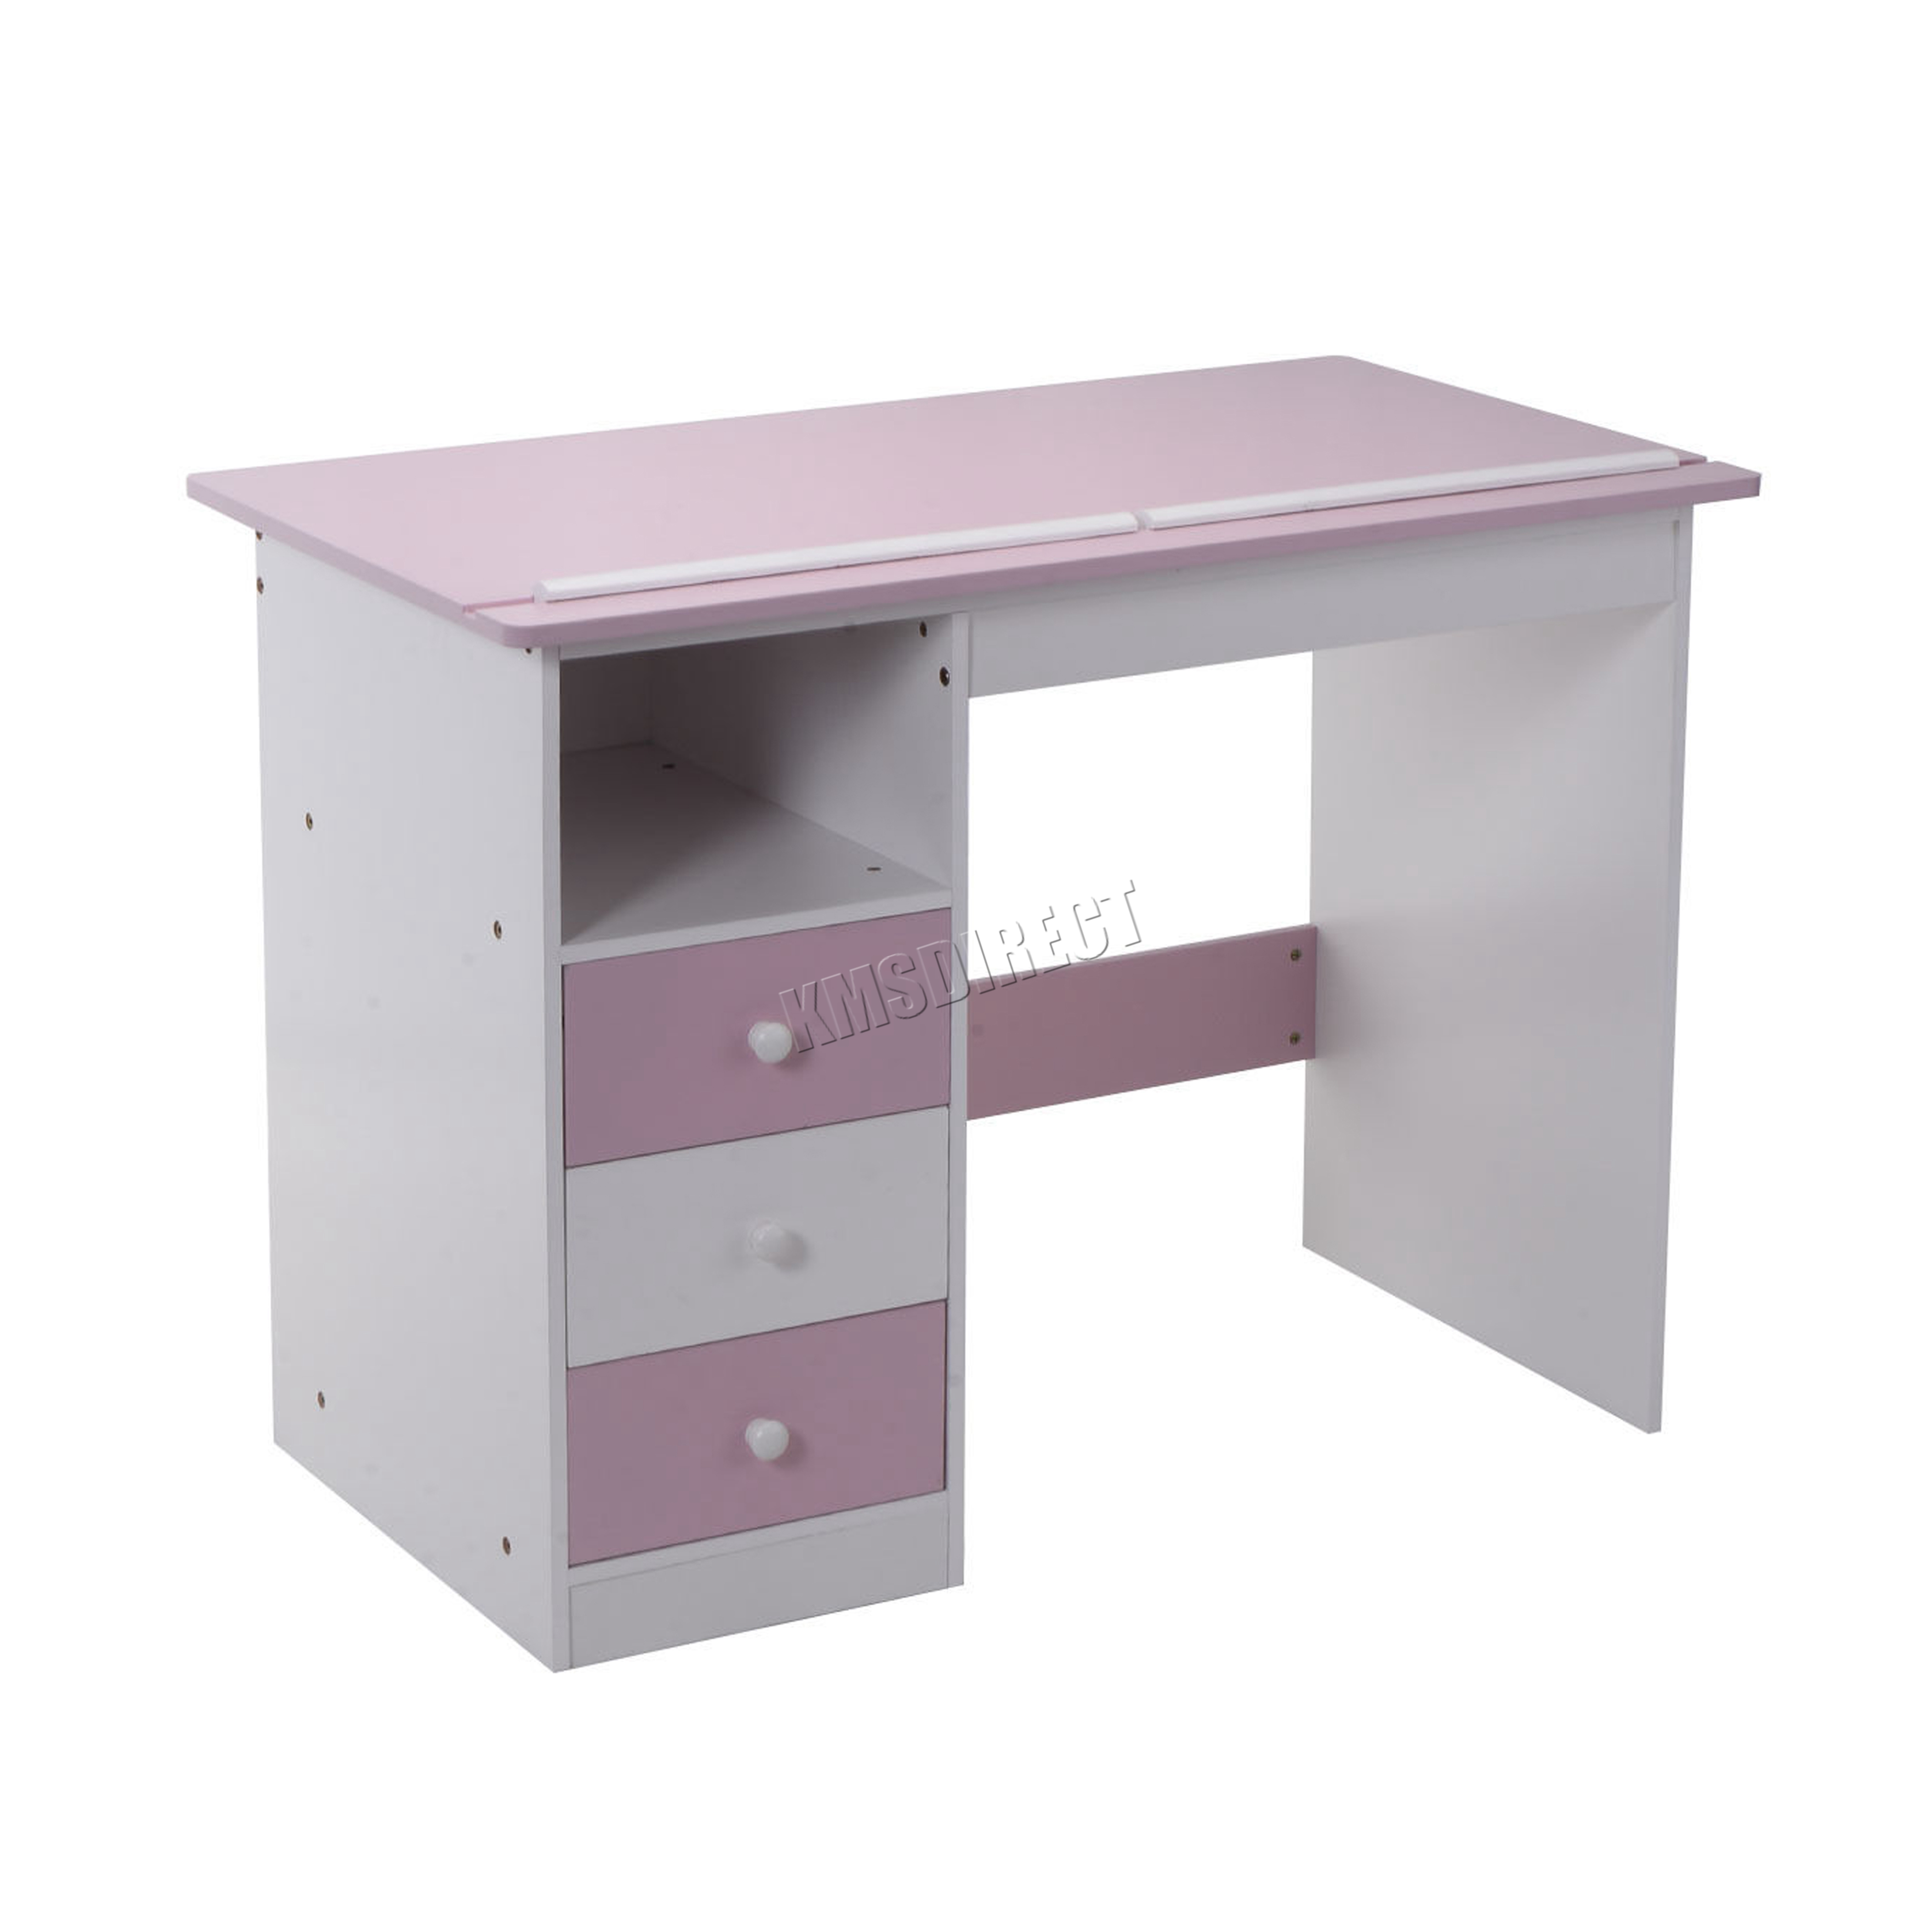 Table drawing for kids - Sentinel Foxhunter Tiltable Kids Study Desk Computer Drawing Lid Table Ksd01 Pink White